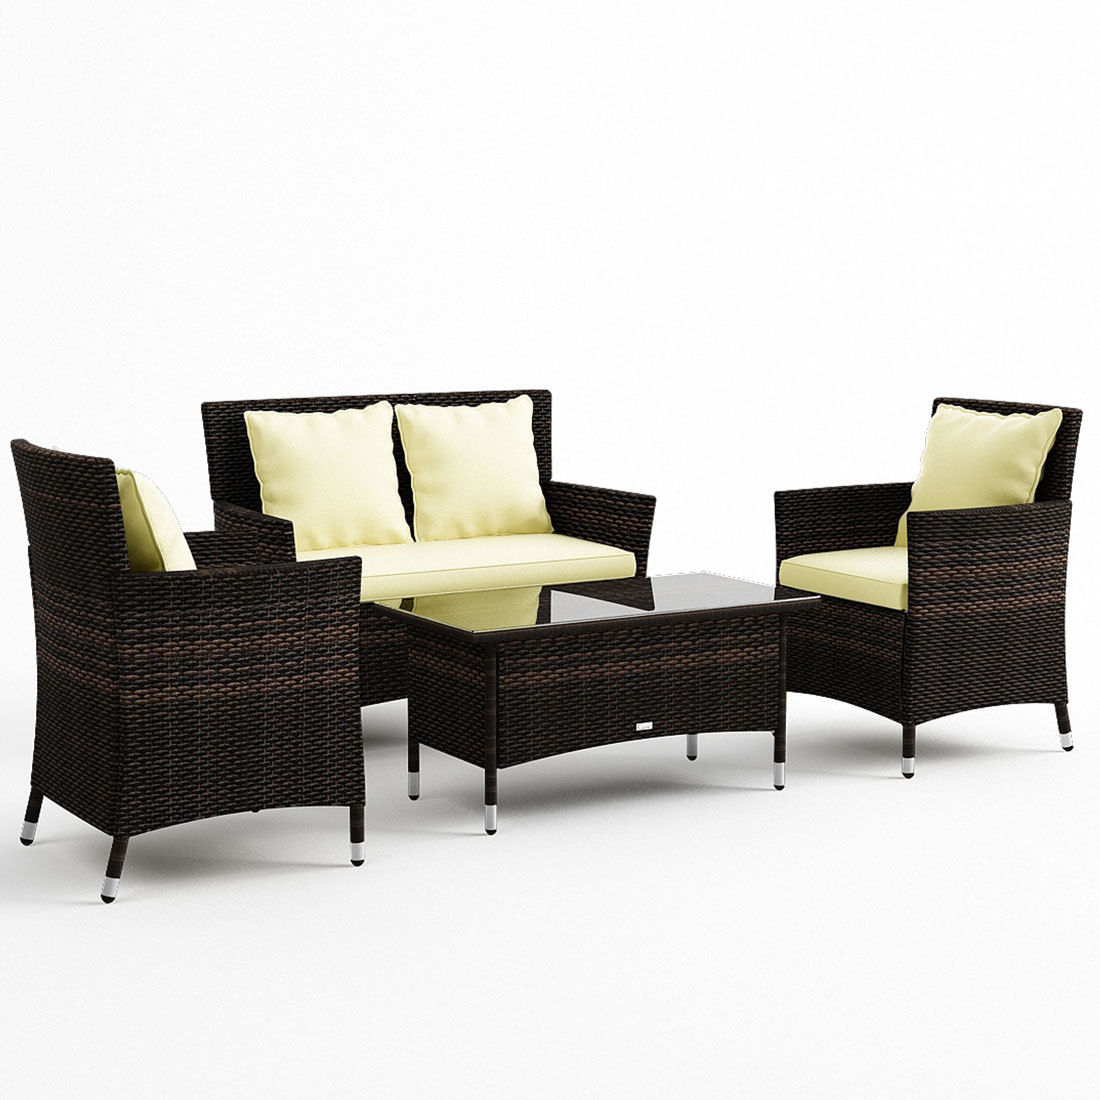 photo photo photo - Luxo Coogee 4 Piece PE Wicker Outdoor Furniture Setting - Coffee